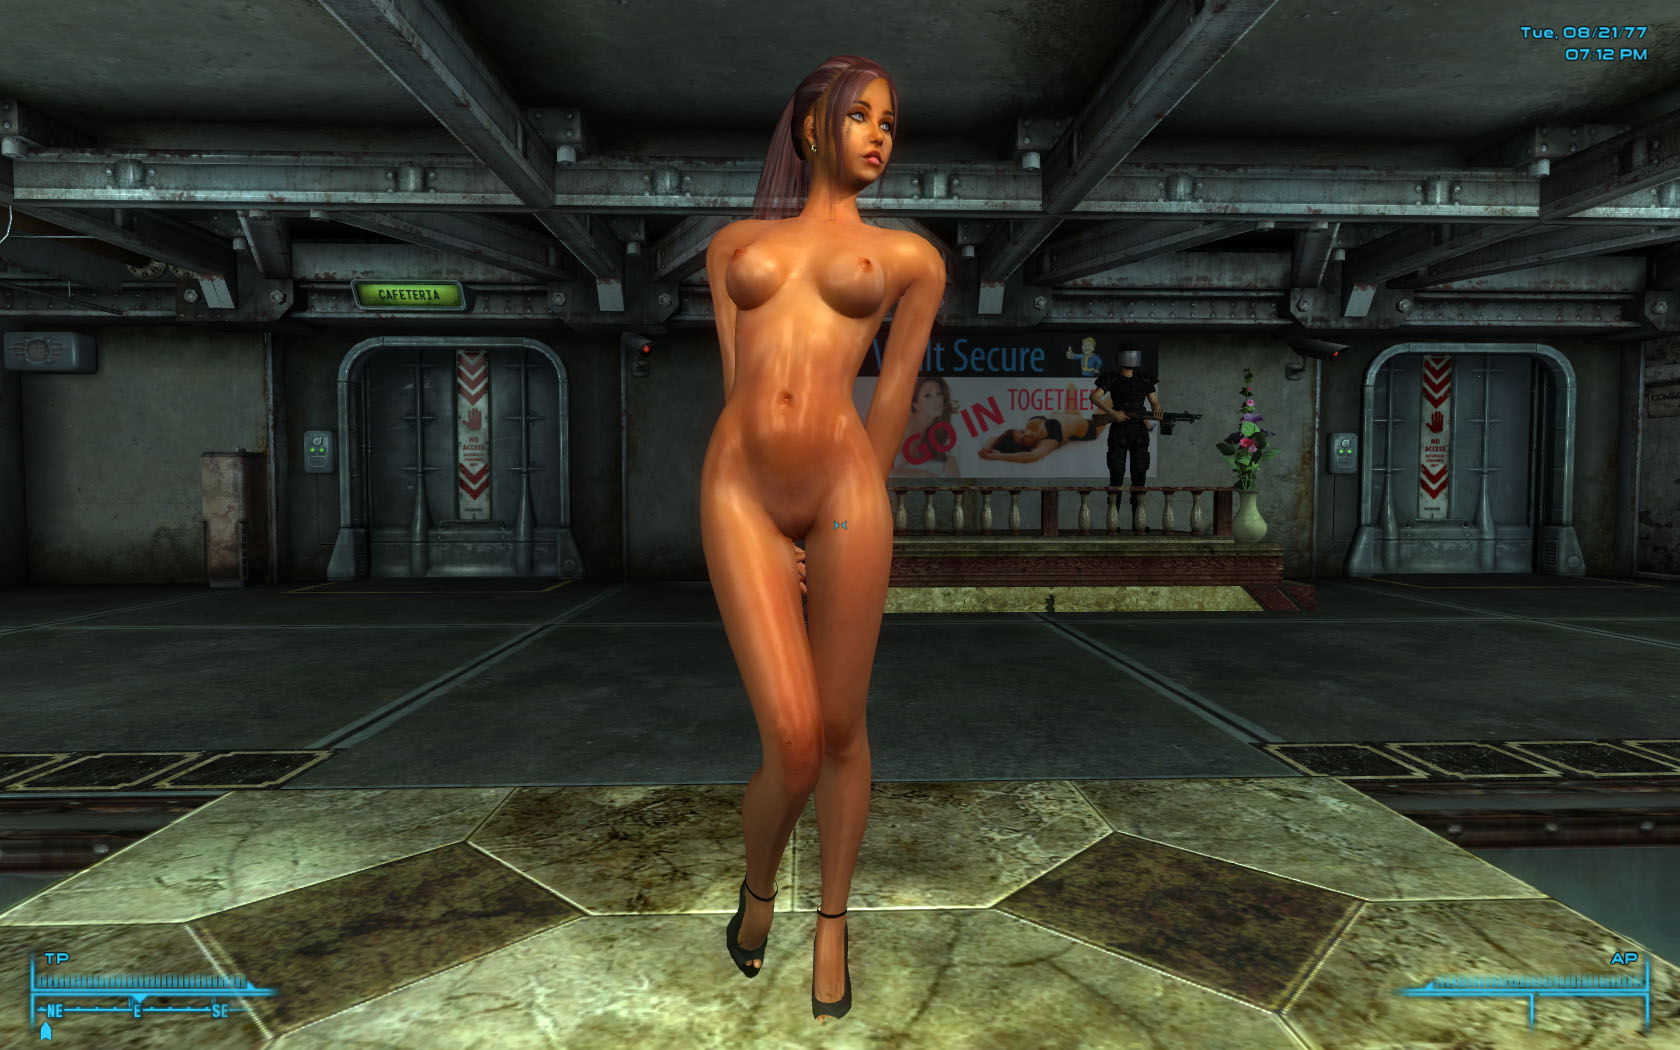 Fallout 3 porn nova xnxx sexual gallery